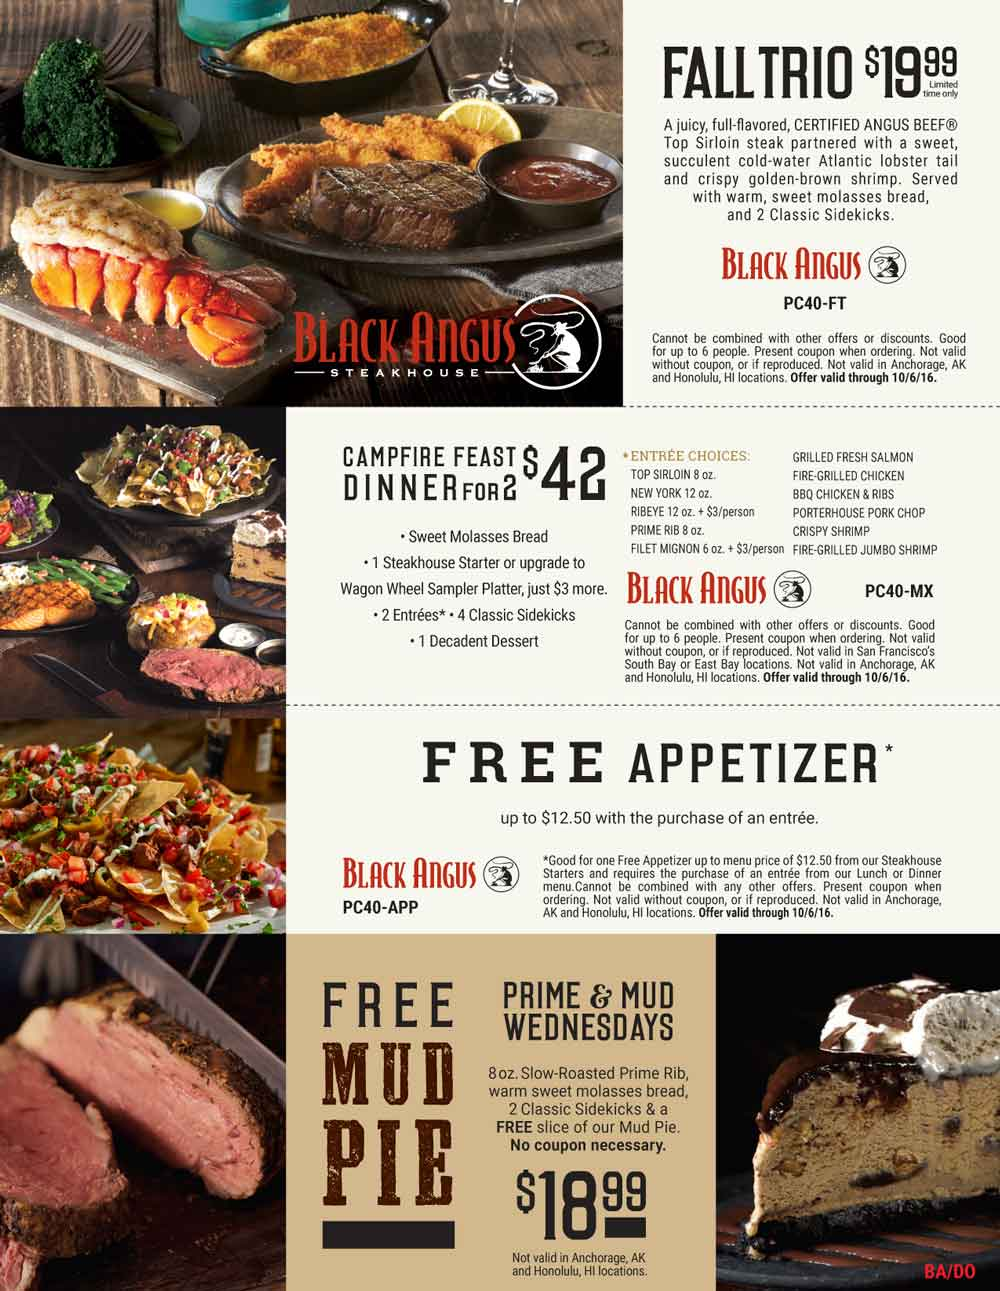 Black Angus Coupon May 2017 Free appetizer with your entree & more at Black Angus steakhouse